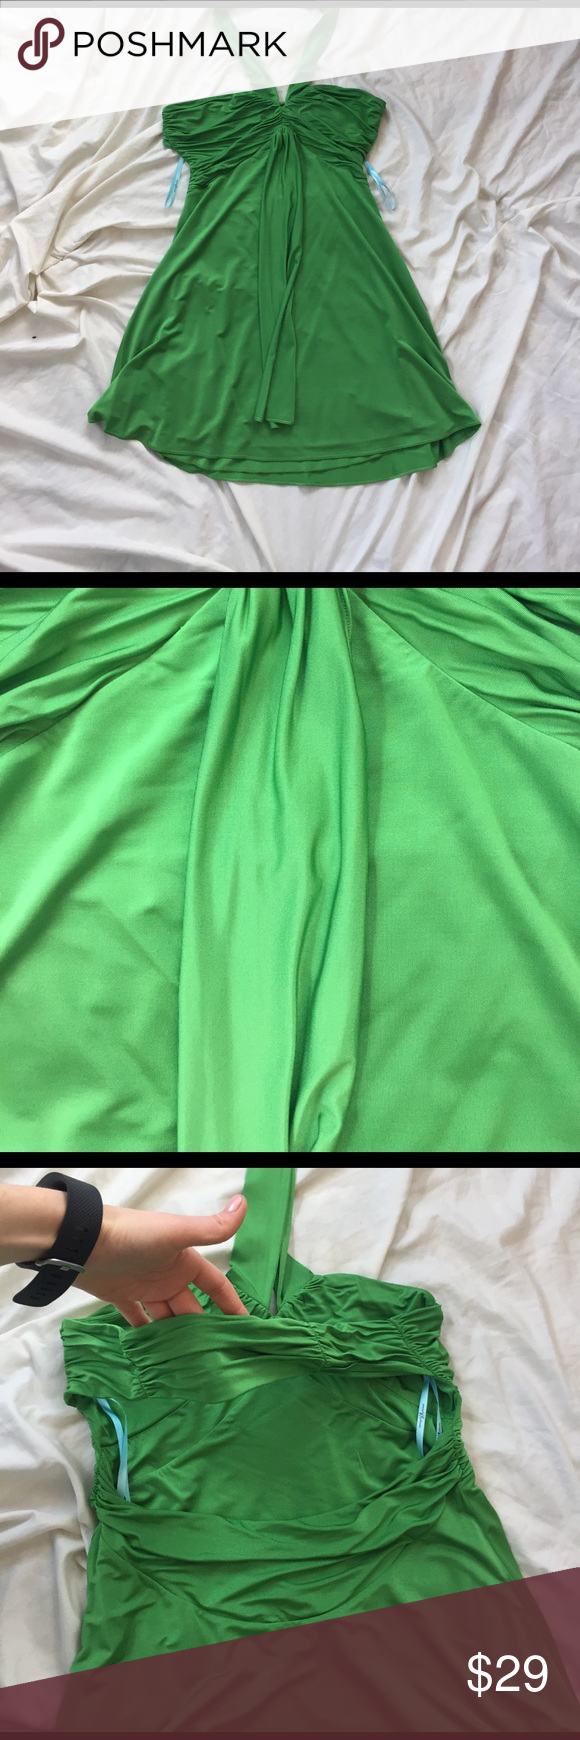 Marciano Dress - Medium Beautiful Green 'Jersey' material halter with open back back design. There is a piece of materiel that goes across the back of the dress for more security as well. See photos! Fun, sexy dress! Marciano Dresses